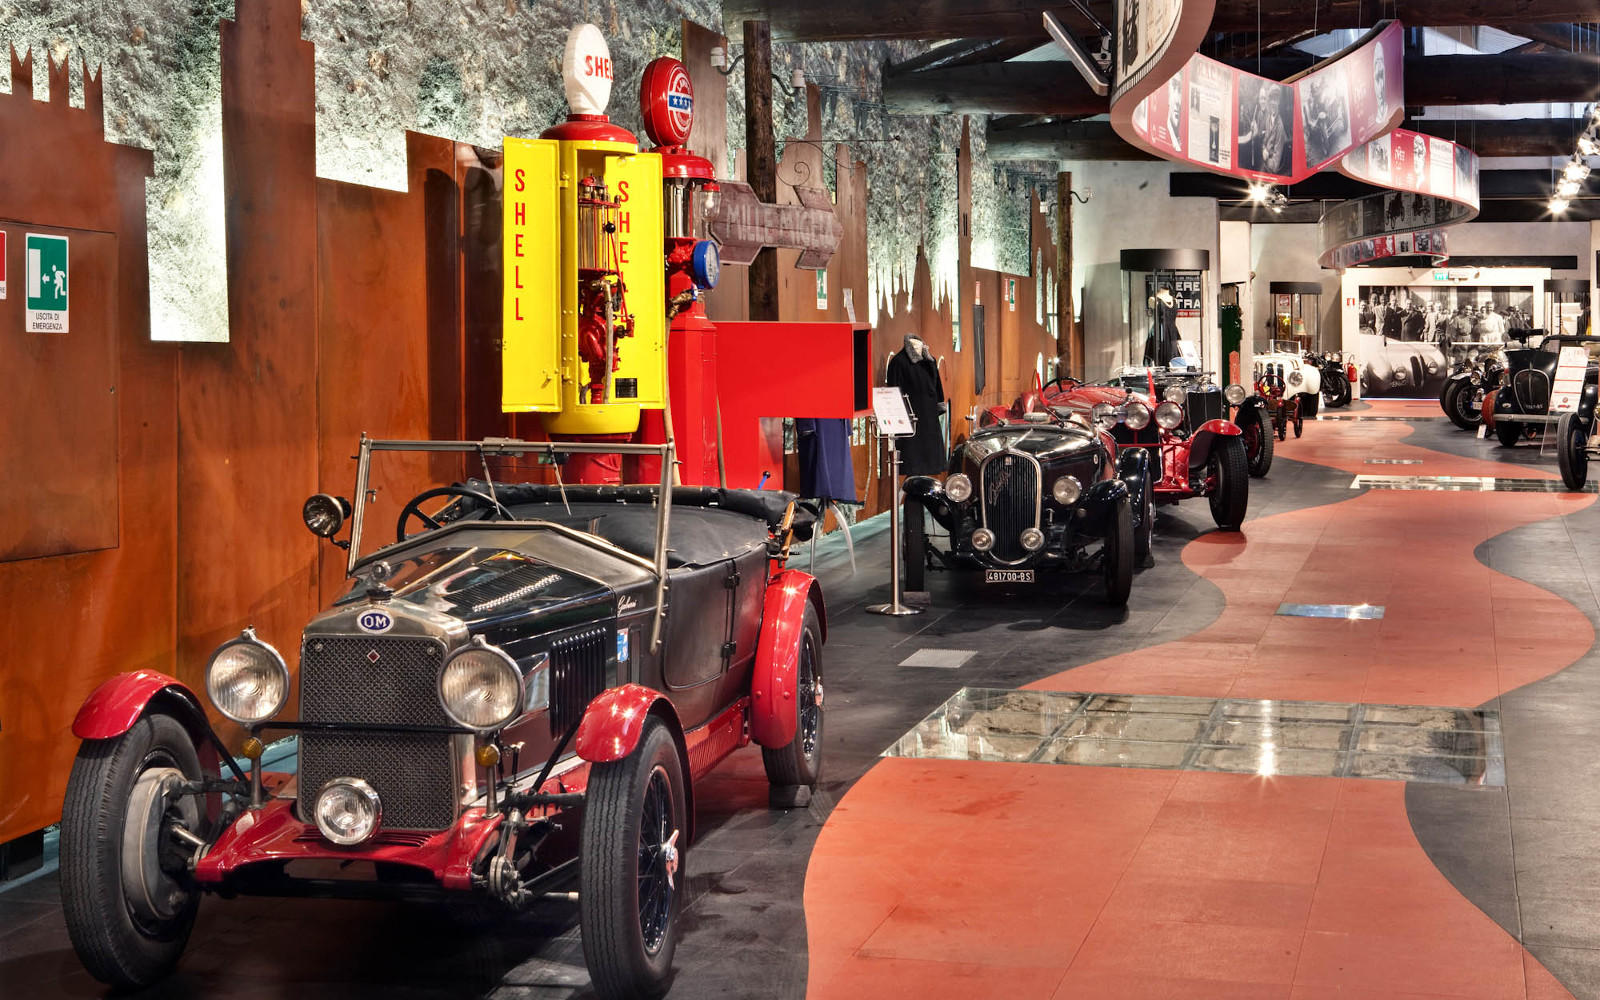 GUIDED TOUR OF THE MILLE MIGLIA MUSEUM